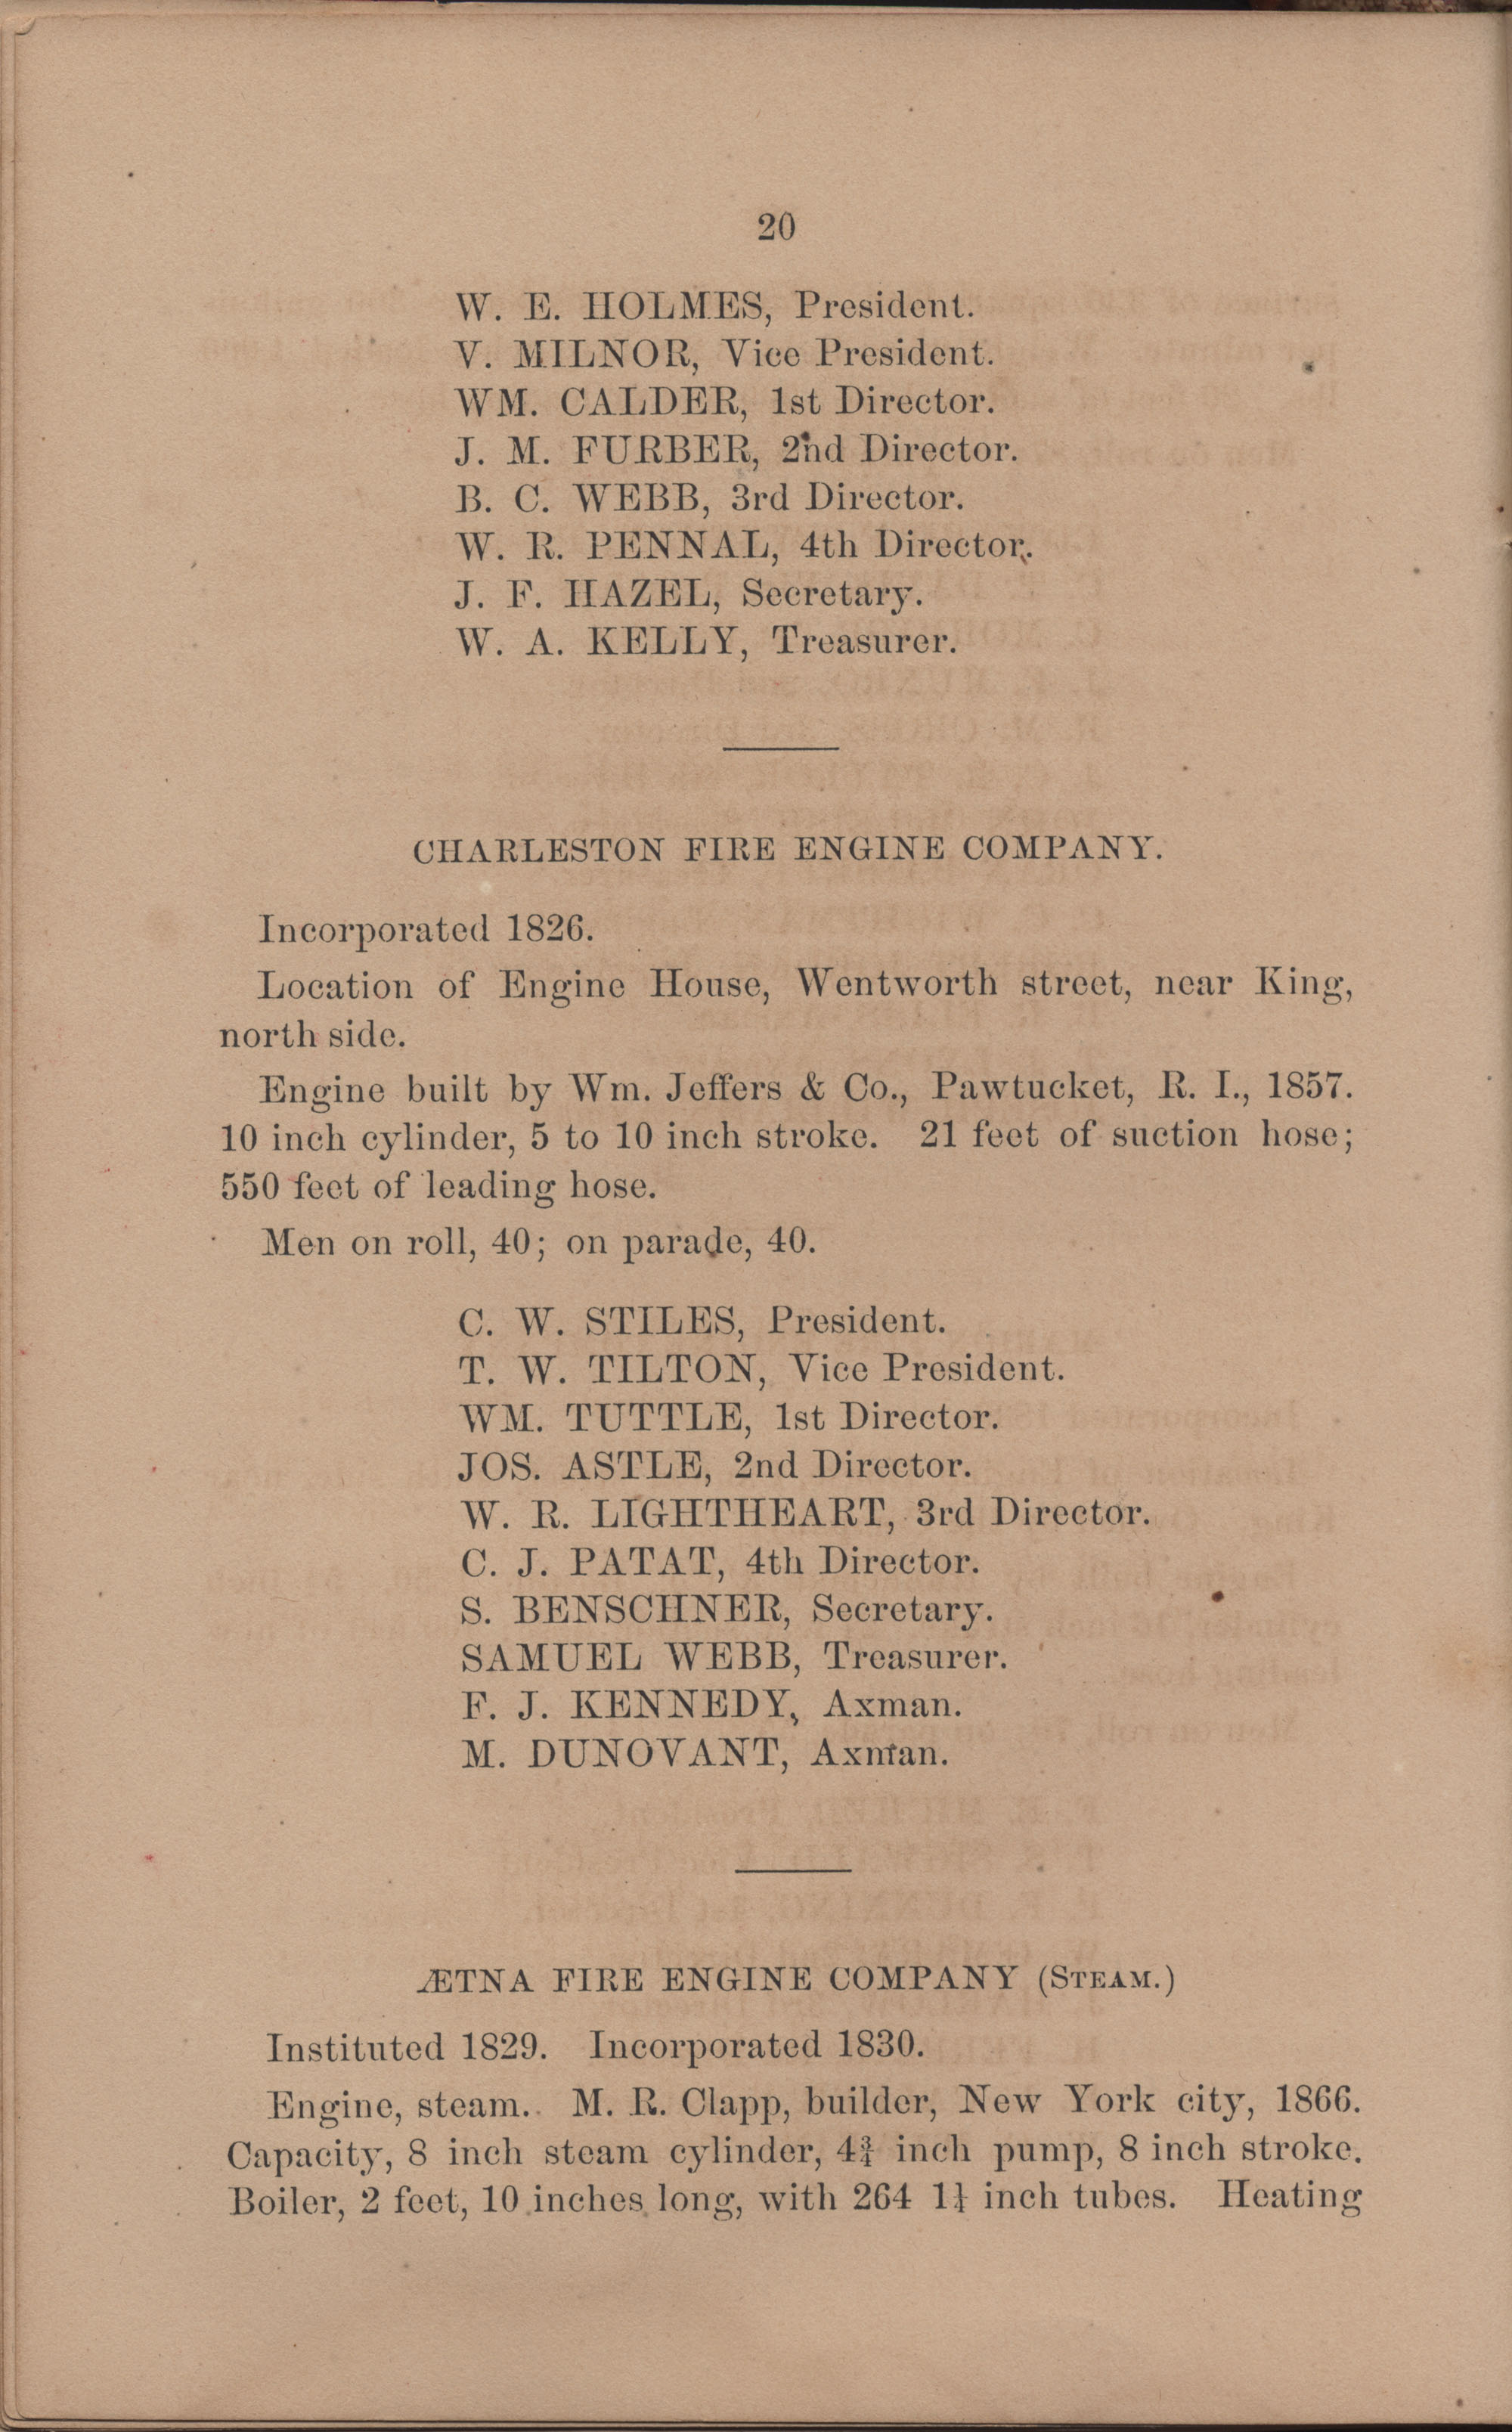 Annual Report of the Chief of the Fire Department of the City of Charleston, page 116